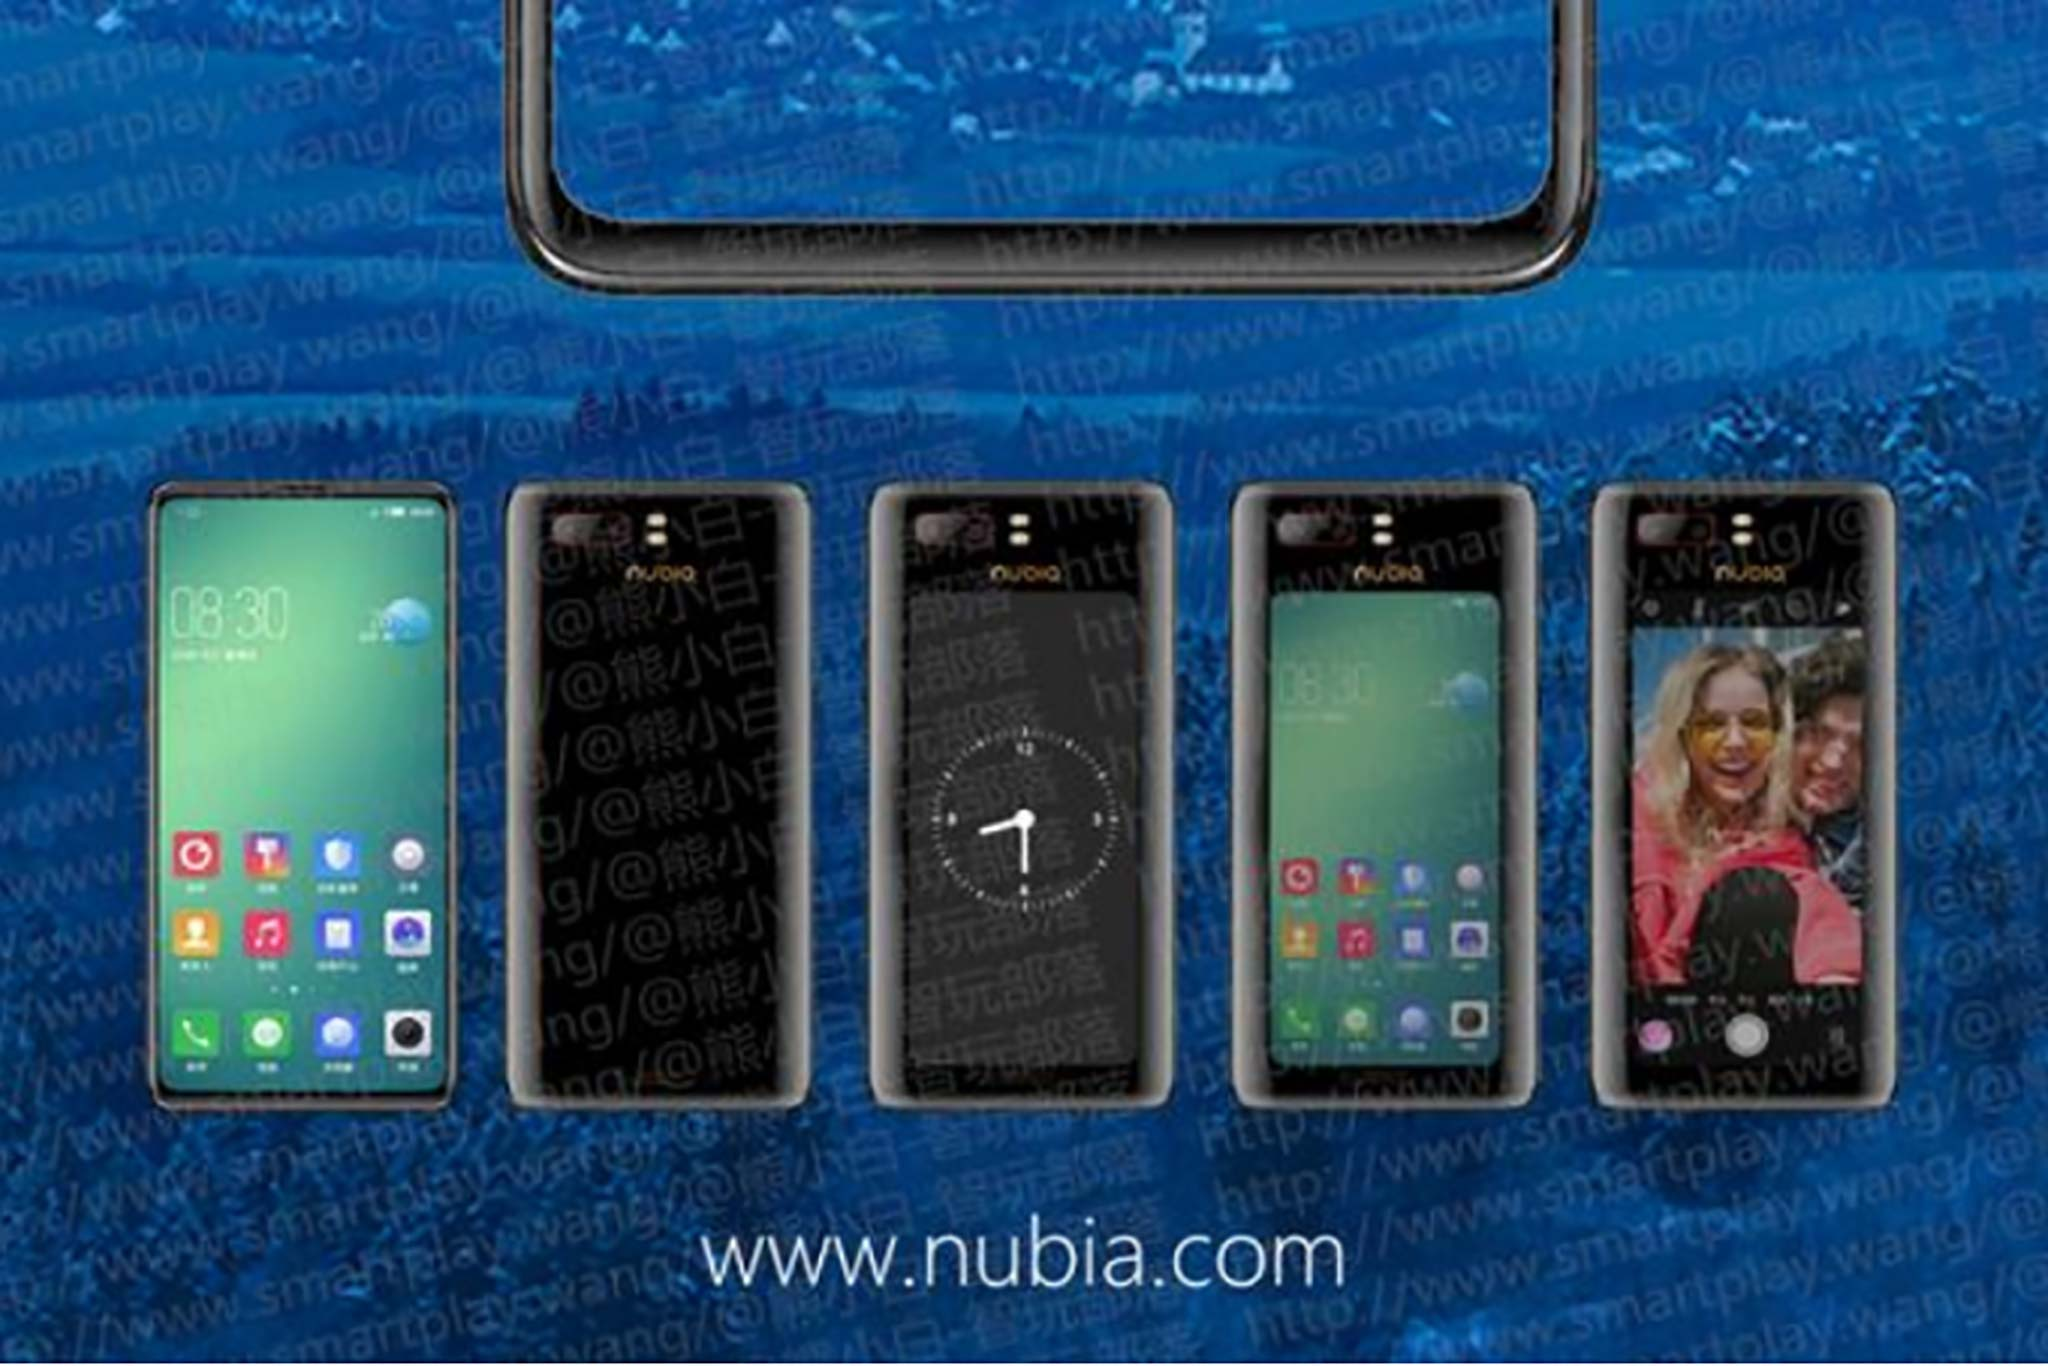 4434033_Nubias-dual-screened-Z18S-to-carry-a-5.1-inch-OLED-panel-in-back.jpg